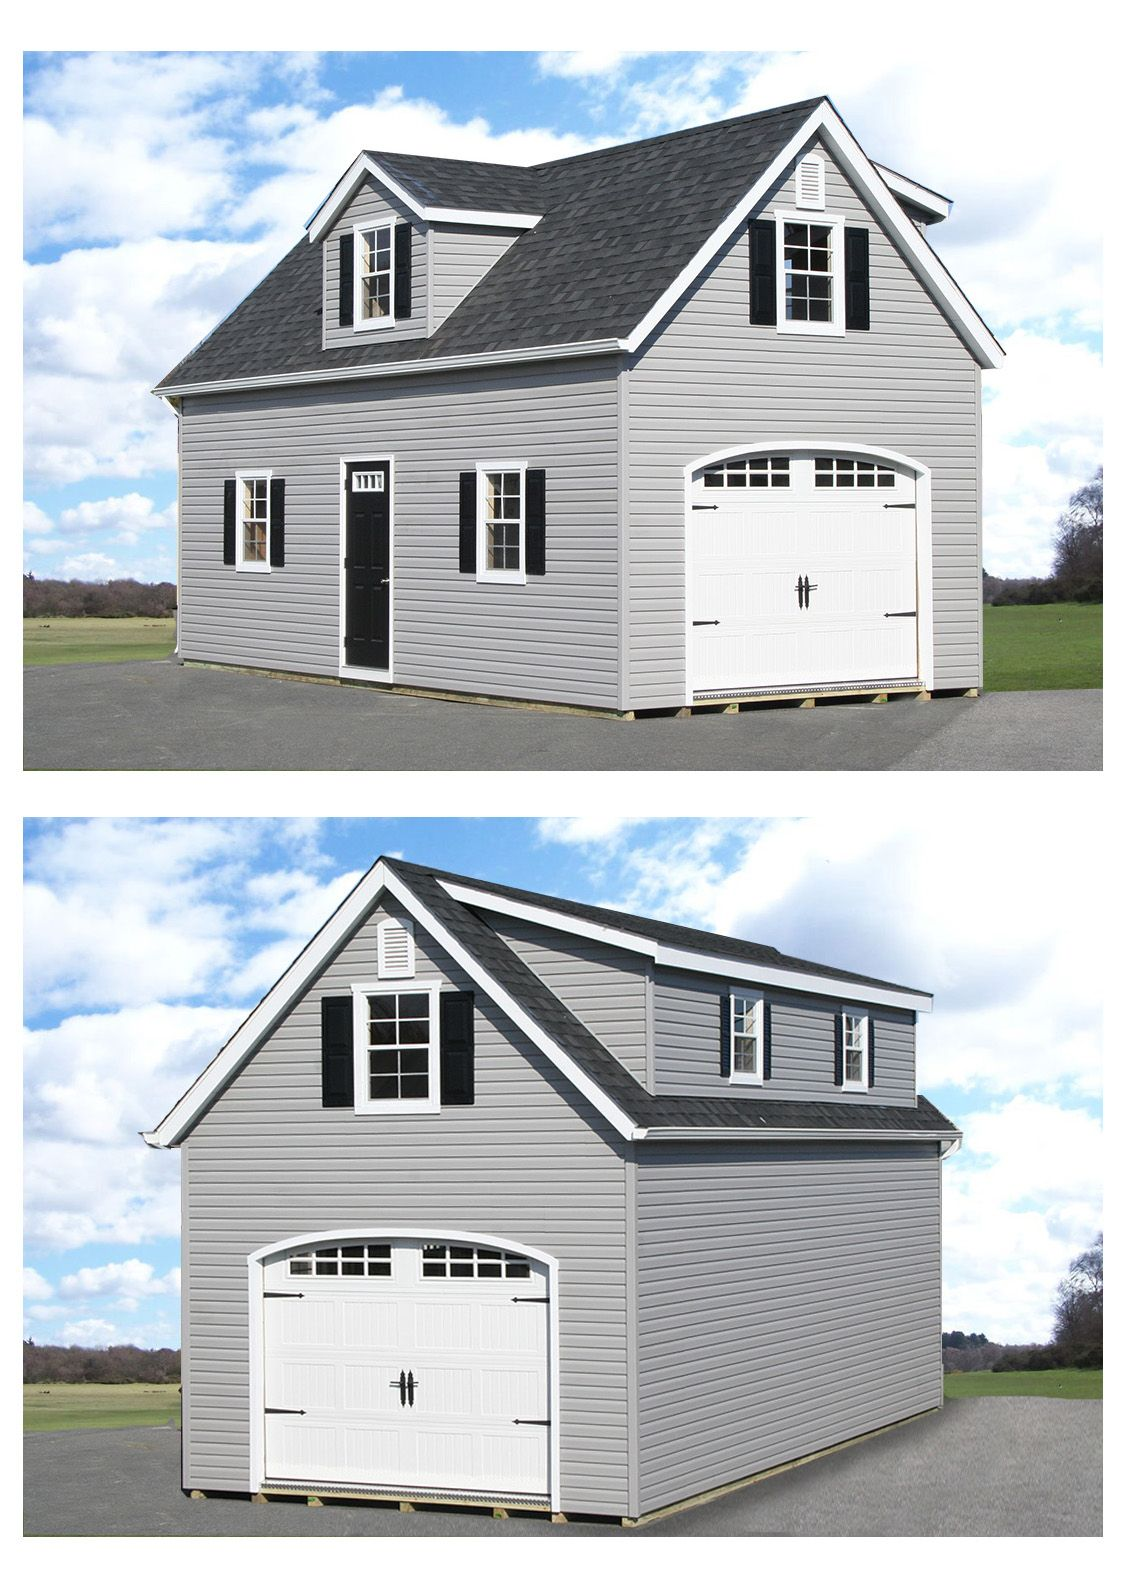 One Story Hip Roof Addition Ideas To Two Story Farmhouse: Add Dormers To Your 2-story Garage! Not Only Looks Great But Adds A Ton Of Space As Well. The